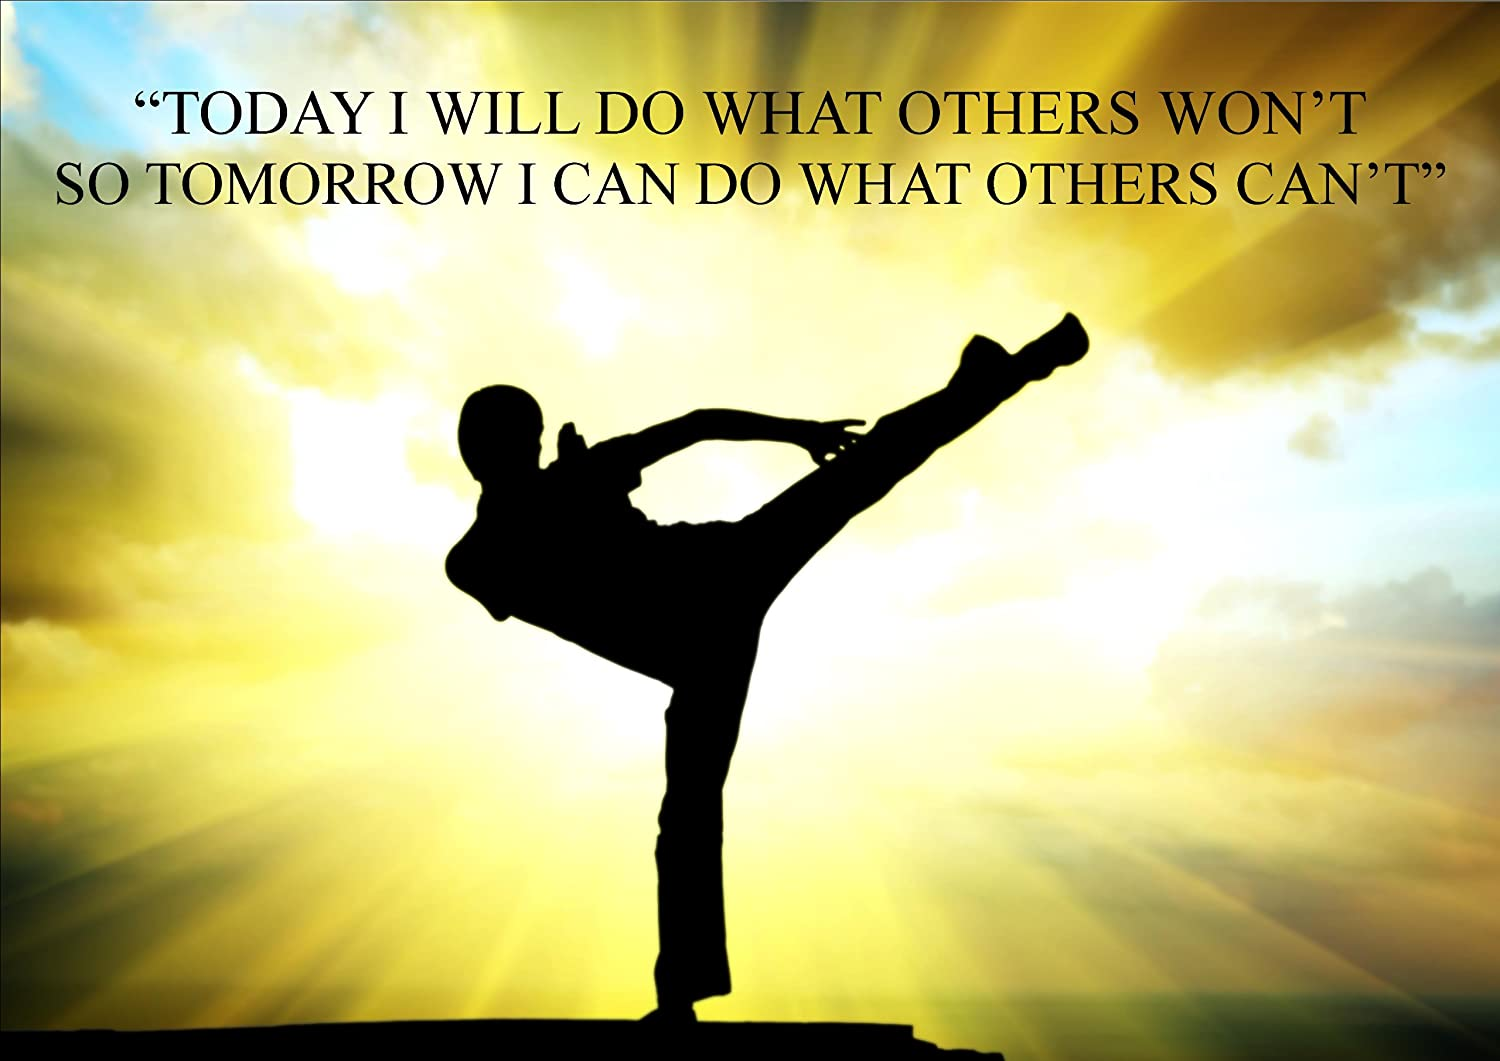 Karate kung fu martial arts quote inspirational poster print picture karate kung fu martial arts quote inspirational poster print picture a32 amazon kitchen home voltagebd Image collections